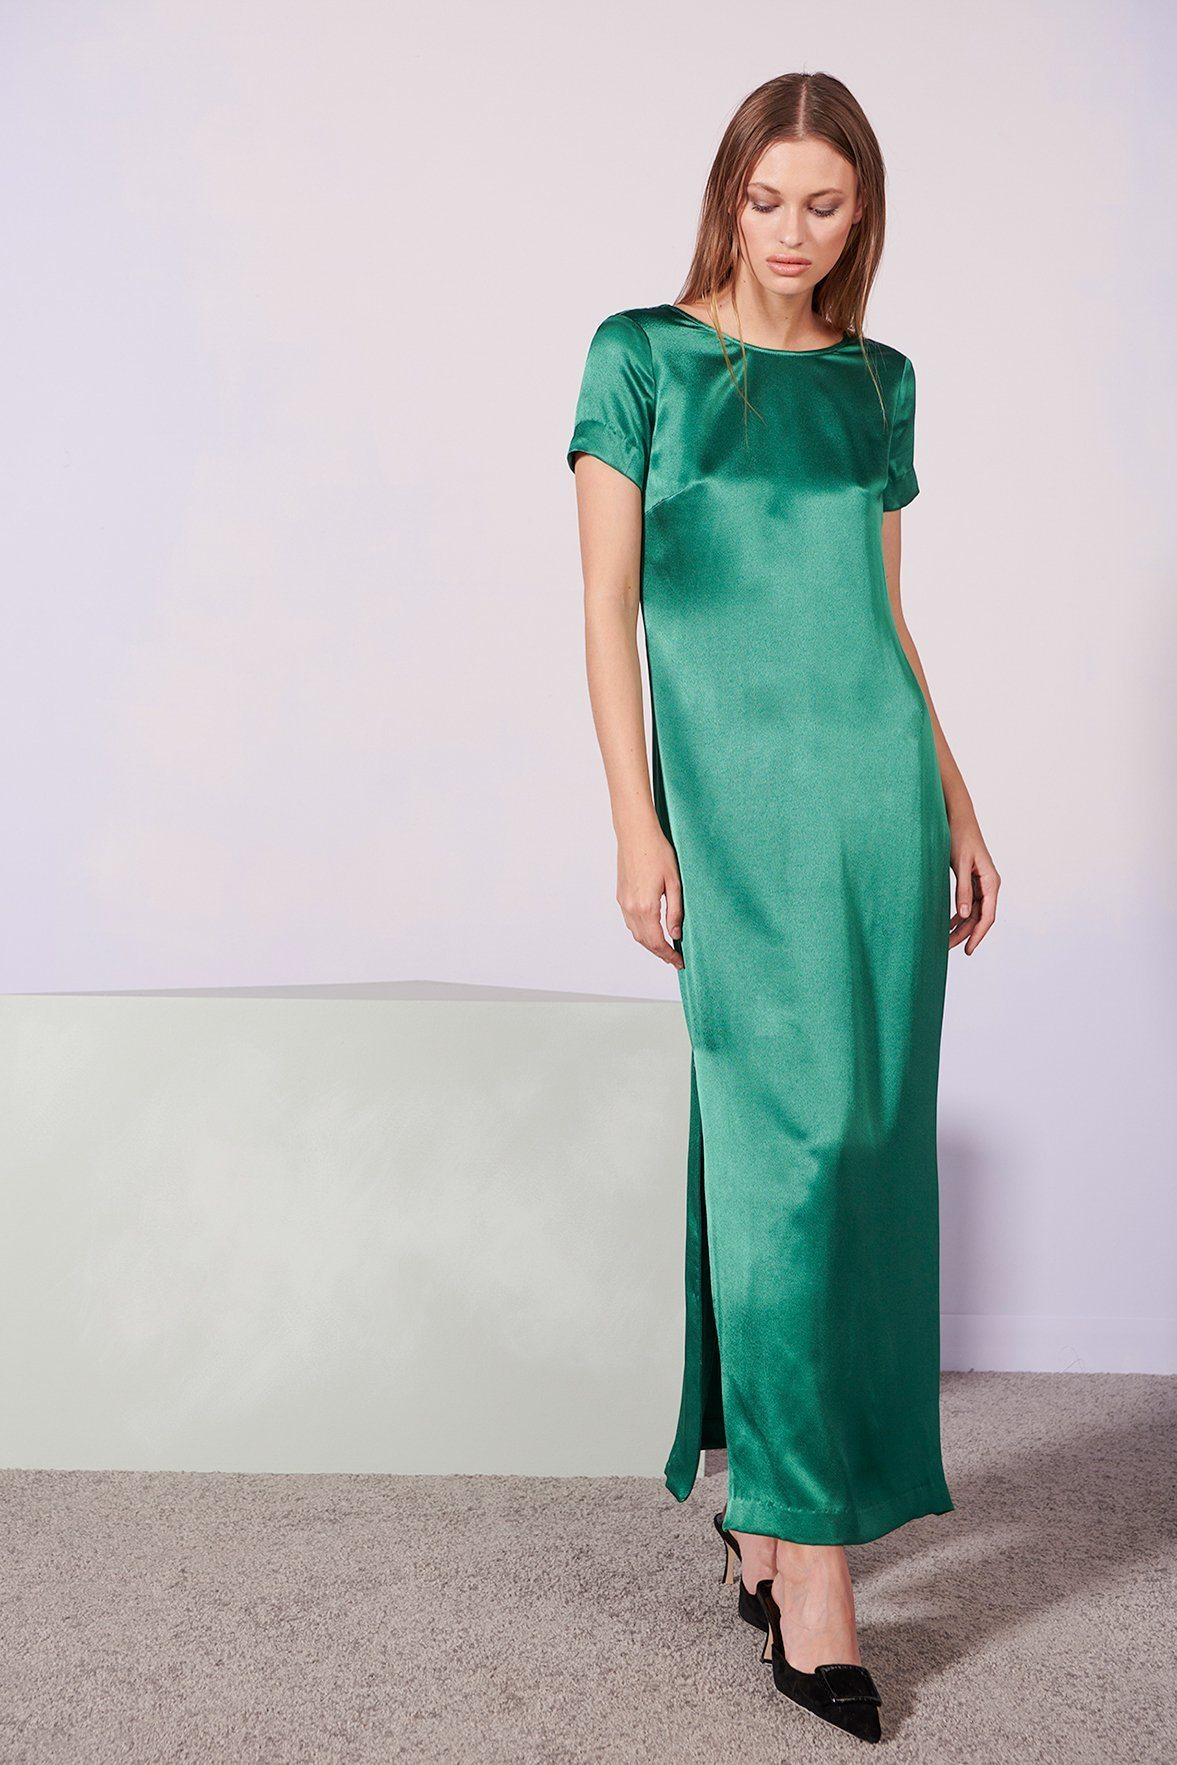 long green staud dress with short sleeves